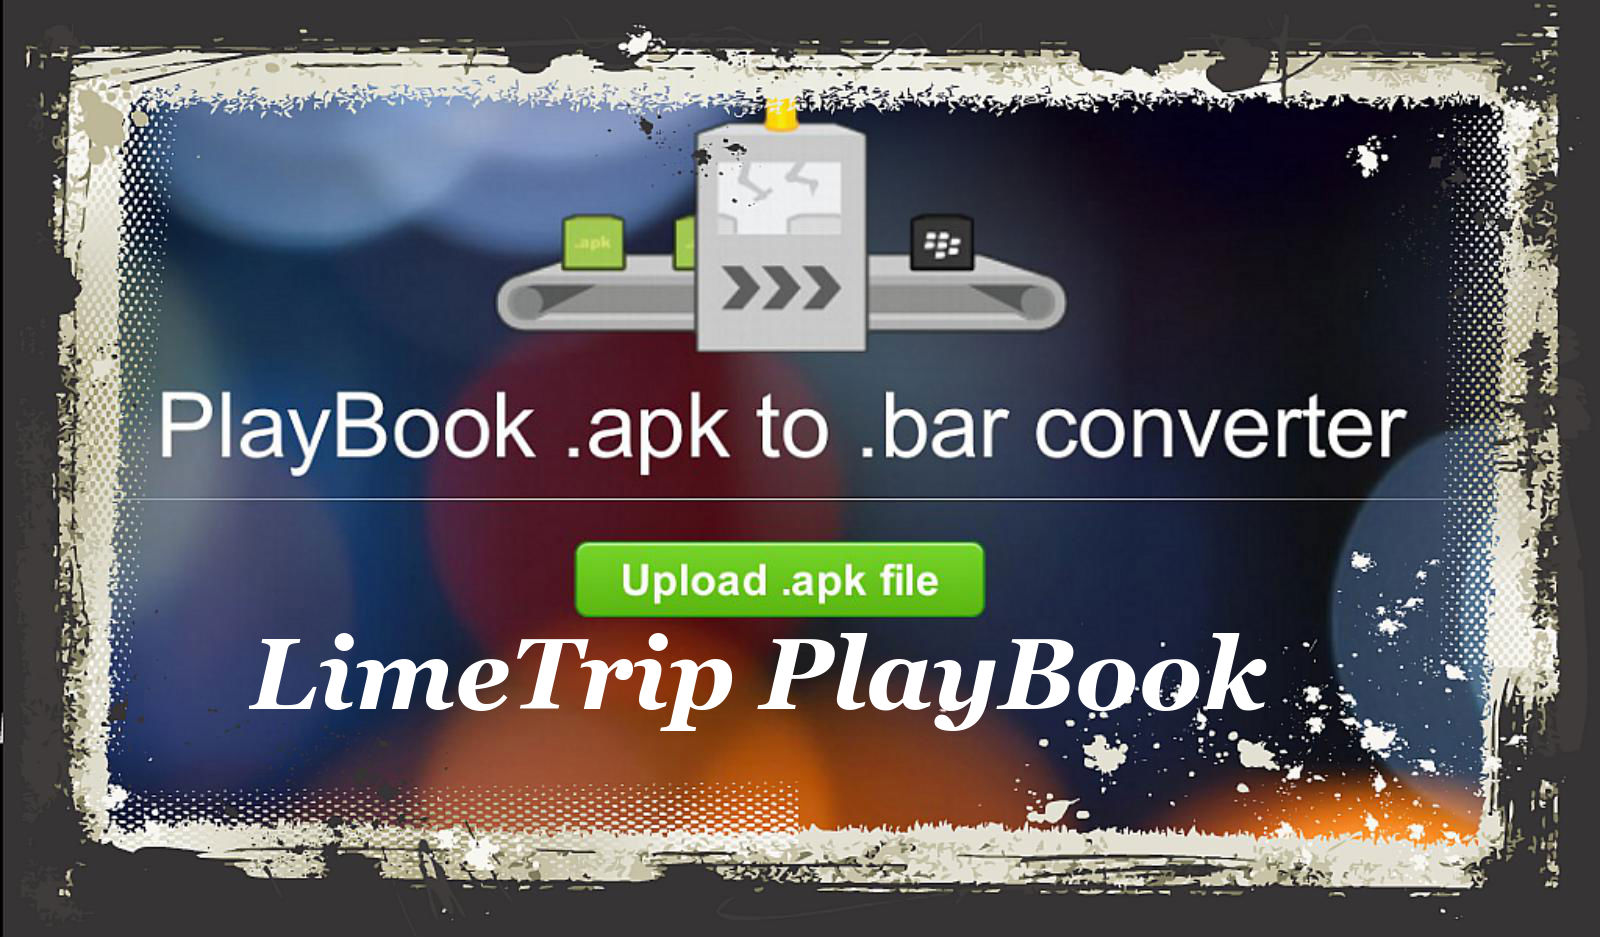 limetrip playbook tricks playbook android bar files